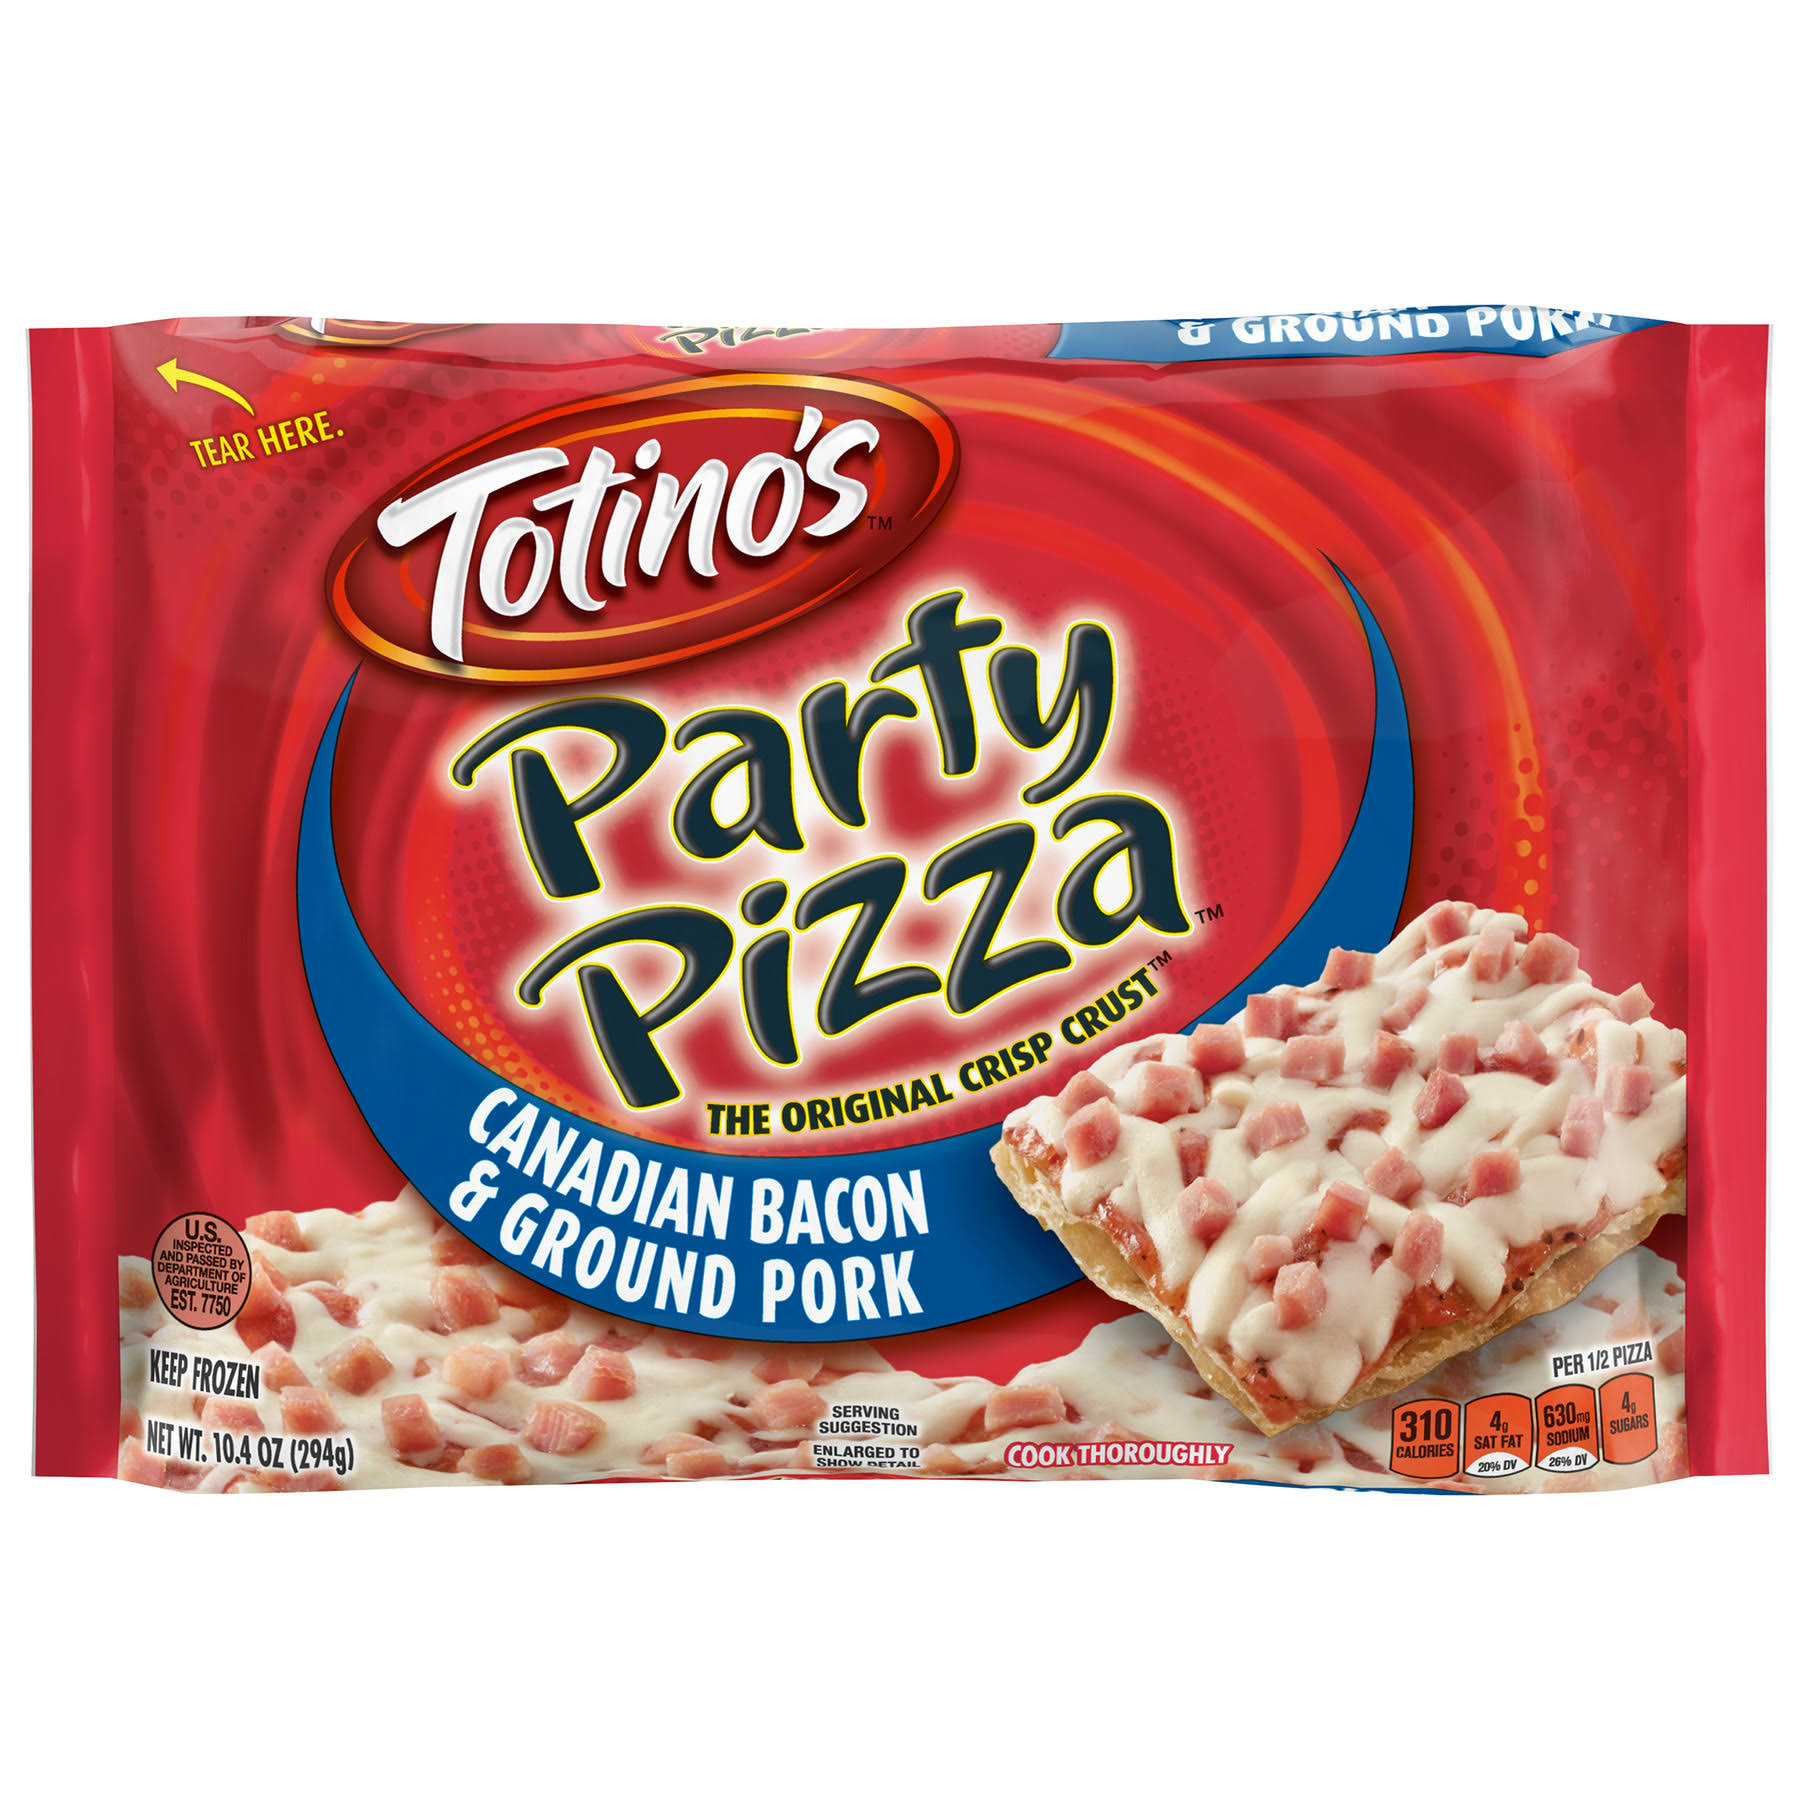 Totino's Party Pizza - Canadian Bacon and Ground Pork, 10.4oz